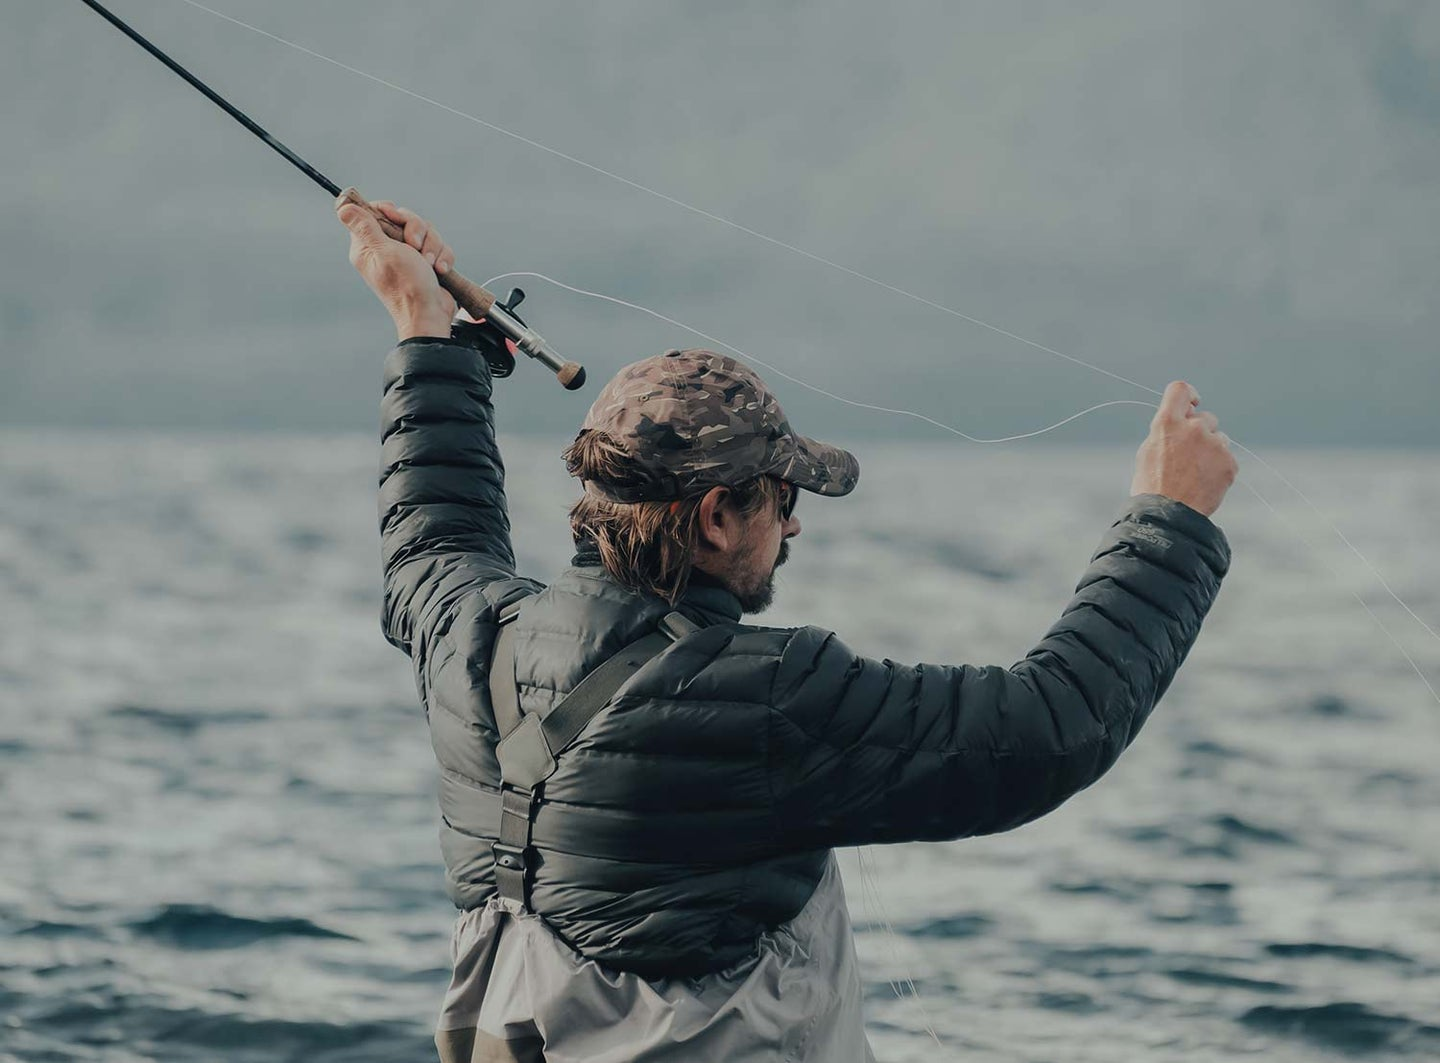 A man prepares to cast a fishing line in the water.